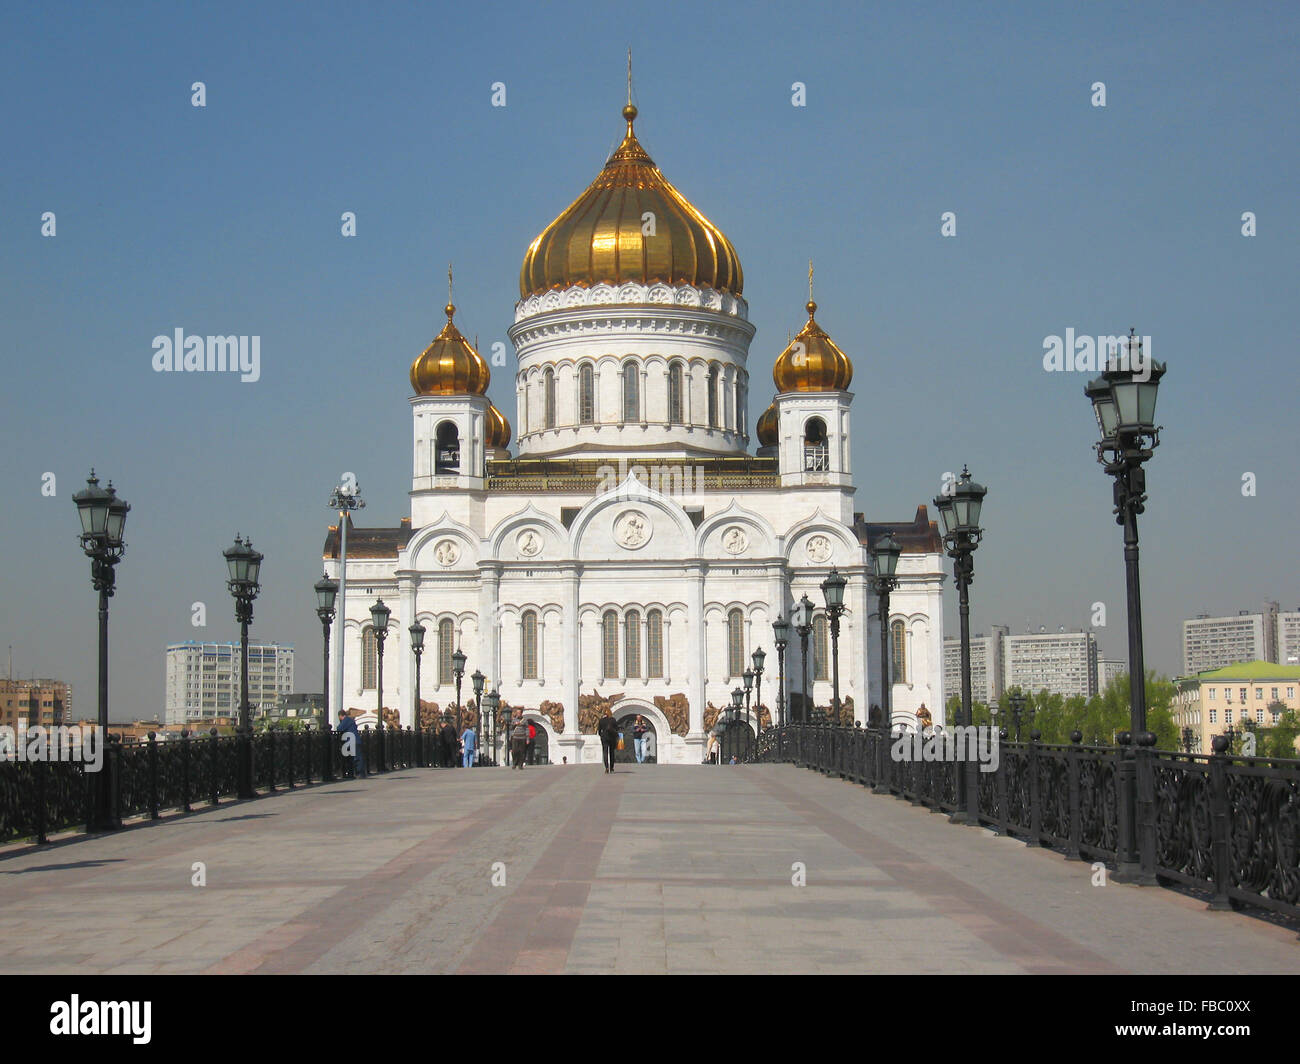 Moscow, cathedral of Jesus Christ Saviour. Date of recording 30.04.2008. - Stock Image